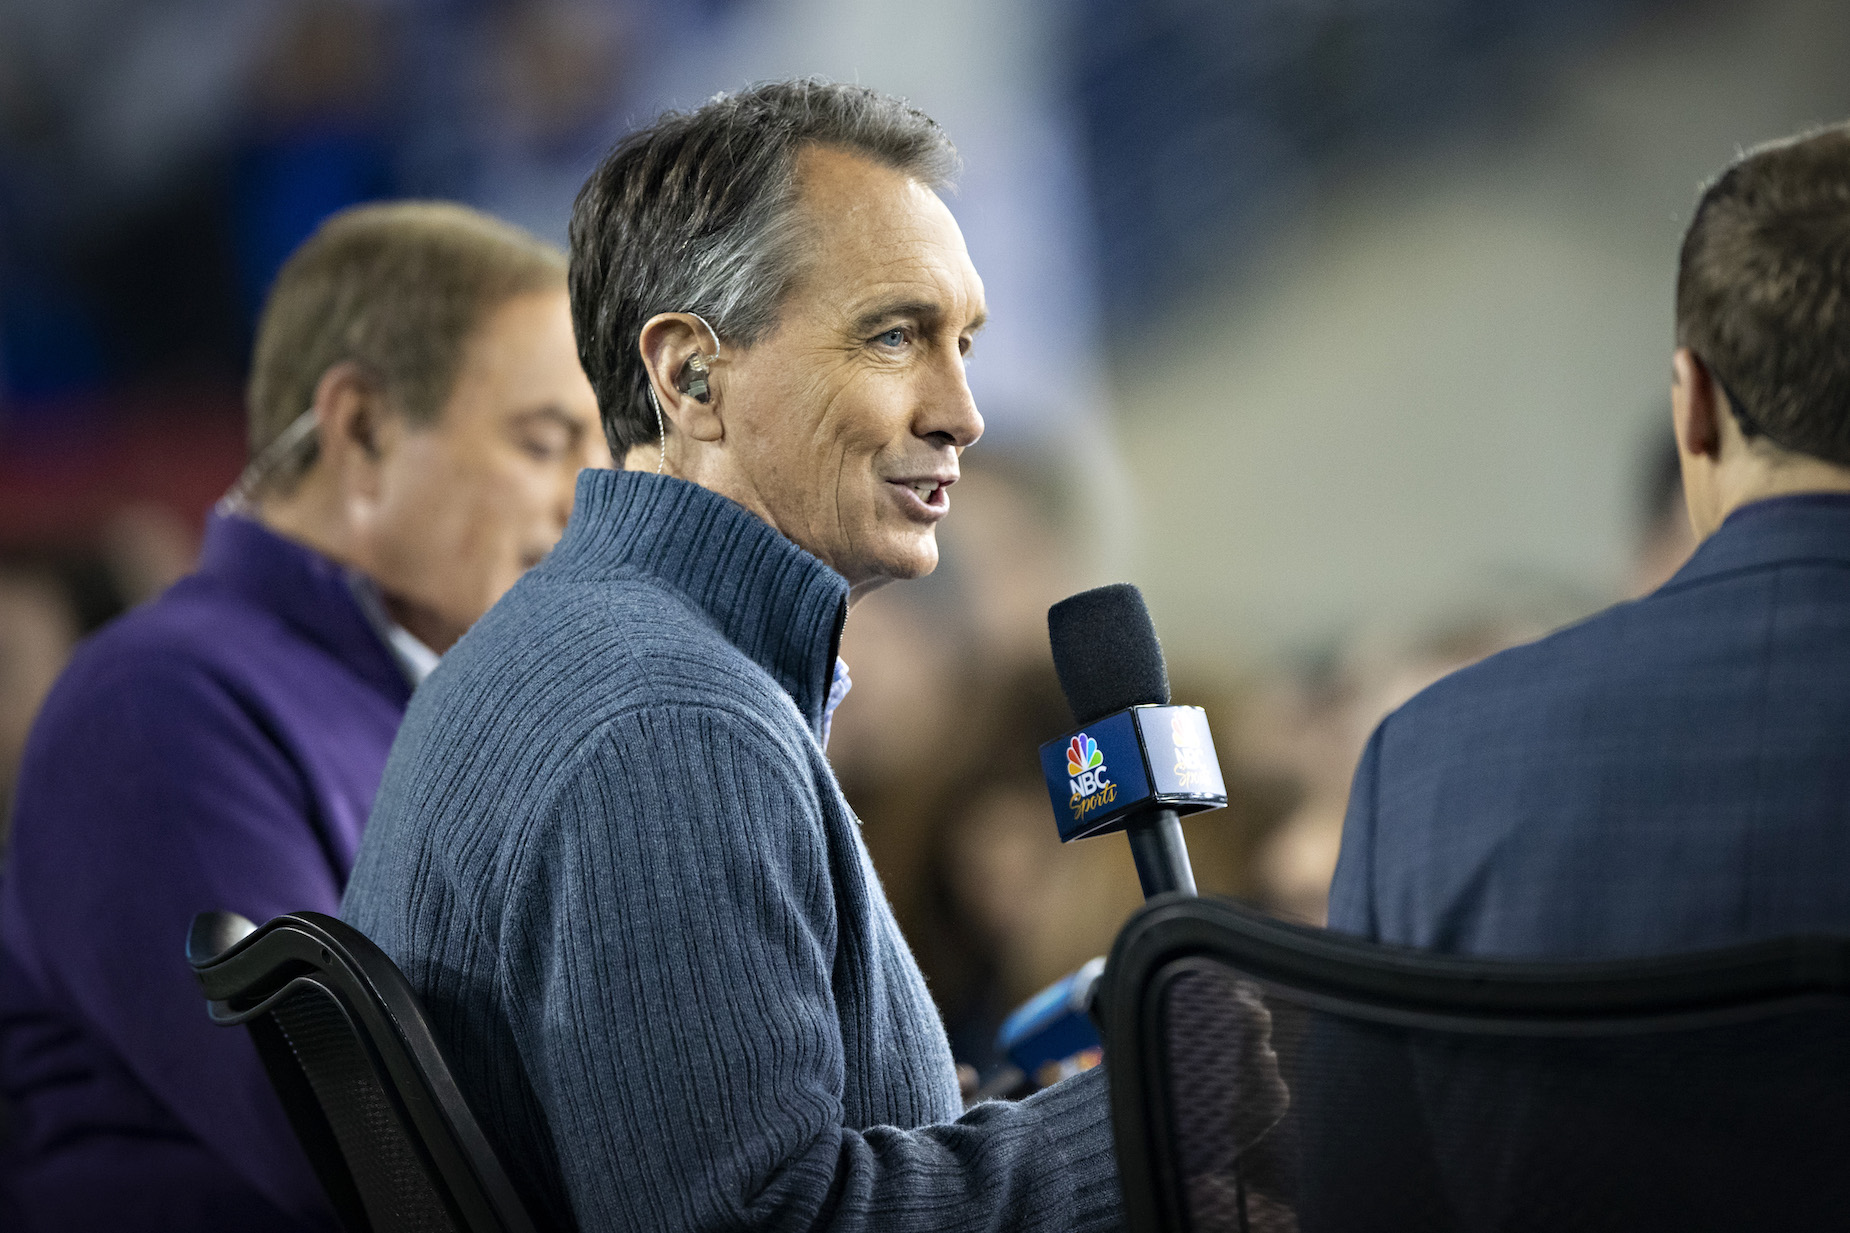 Cris Collinsworth earned some rare praise on Sunday Night when called out the Philadelphia Eagles' quarterback change.